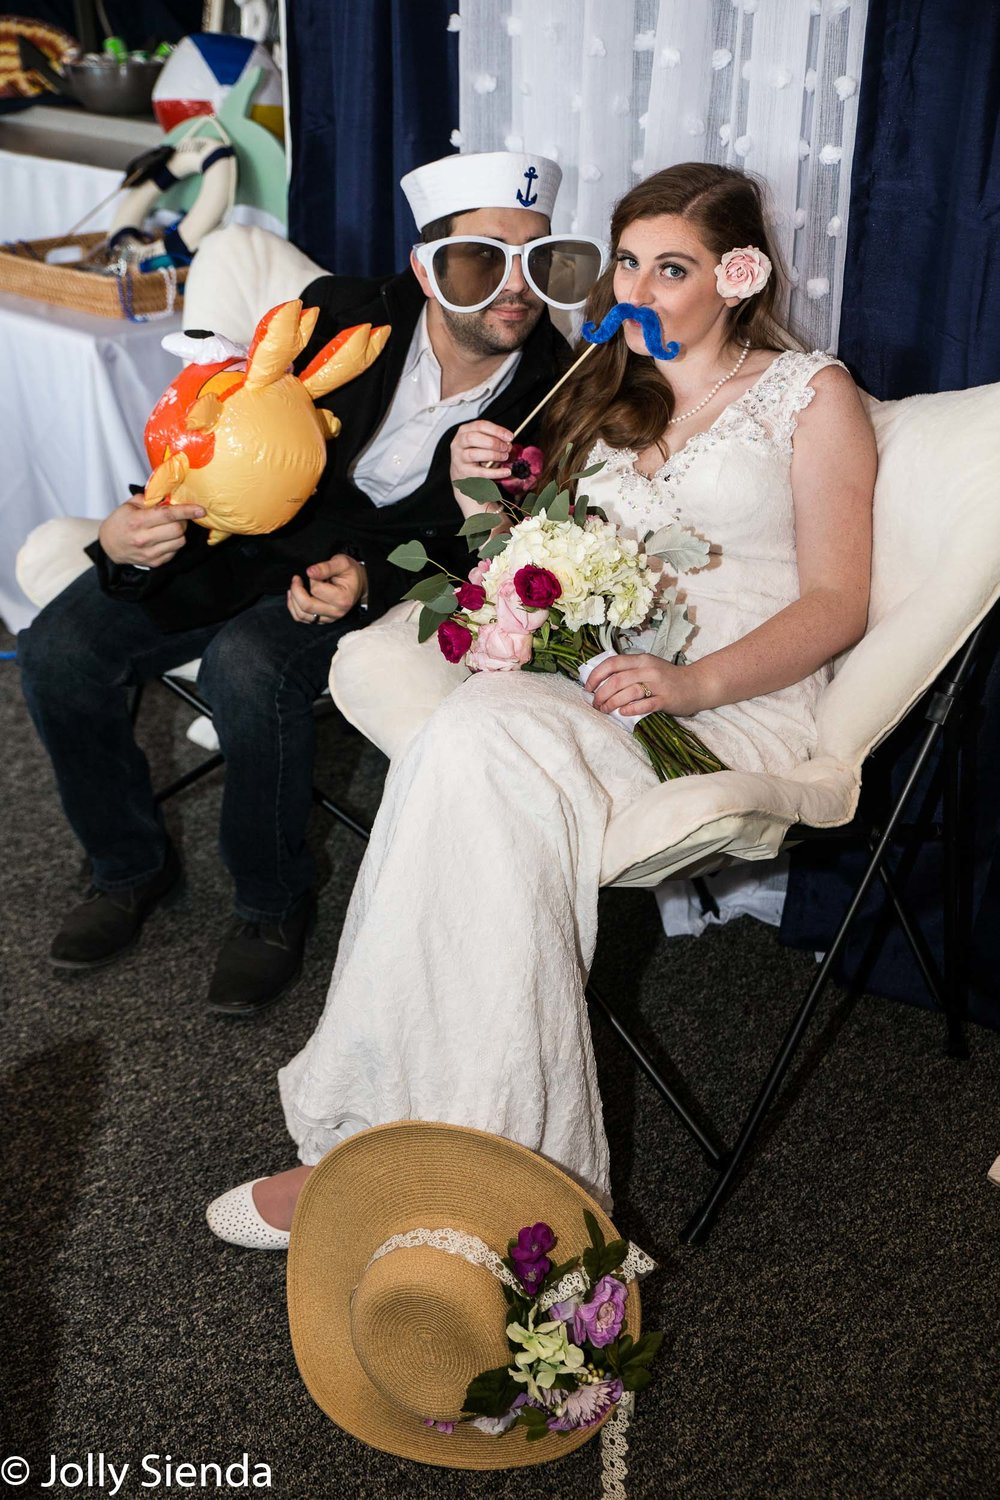 Oversized sunglasses and costume fun for the bride and groom at